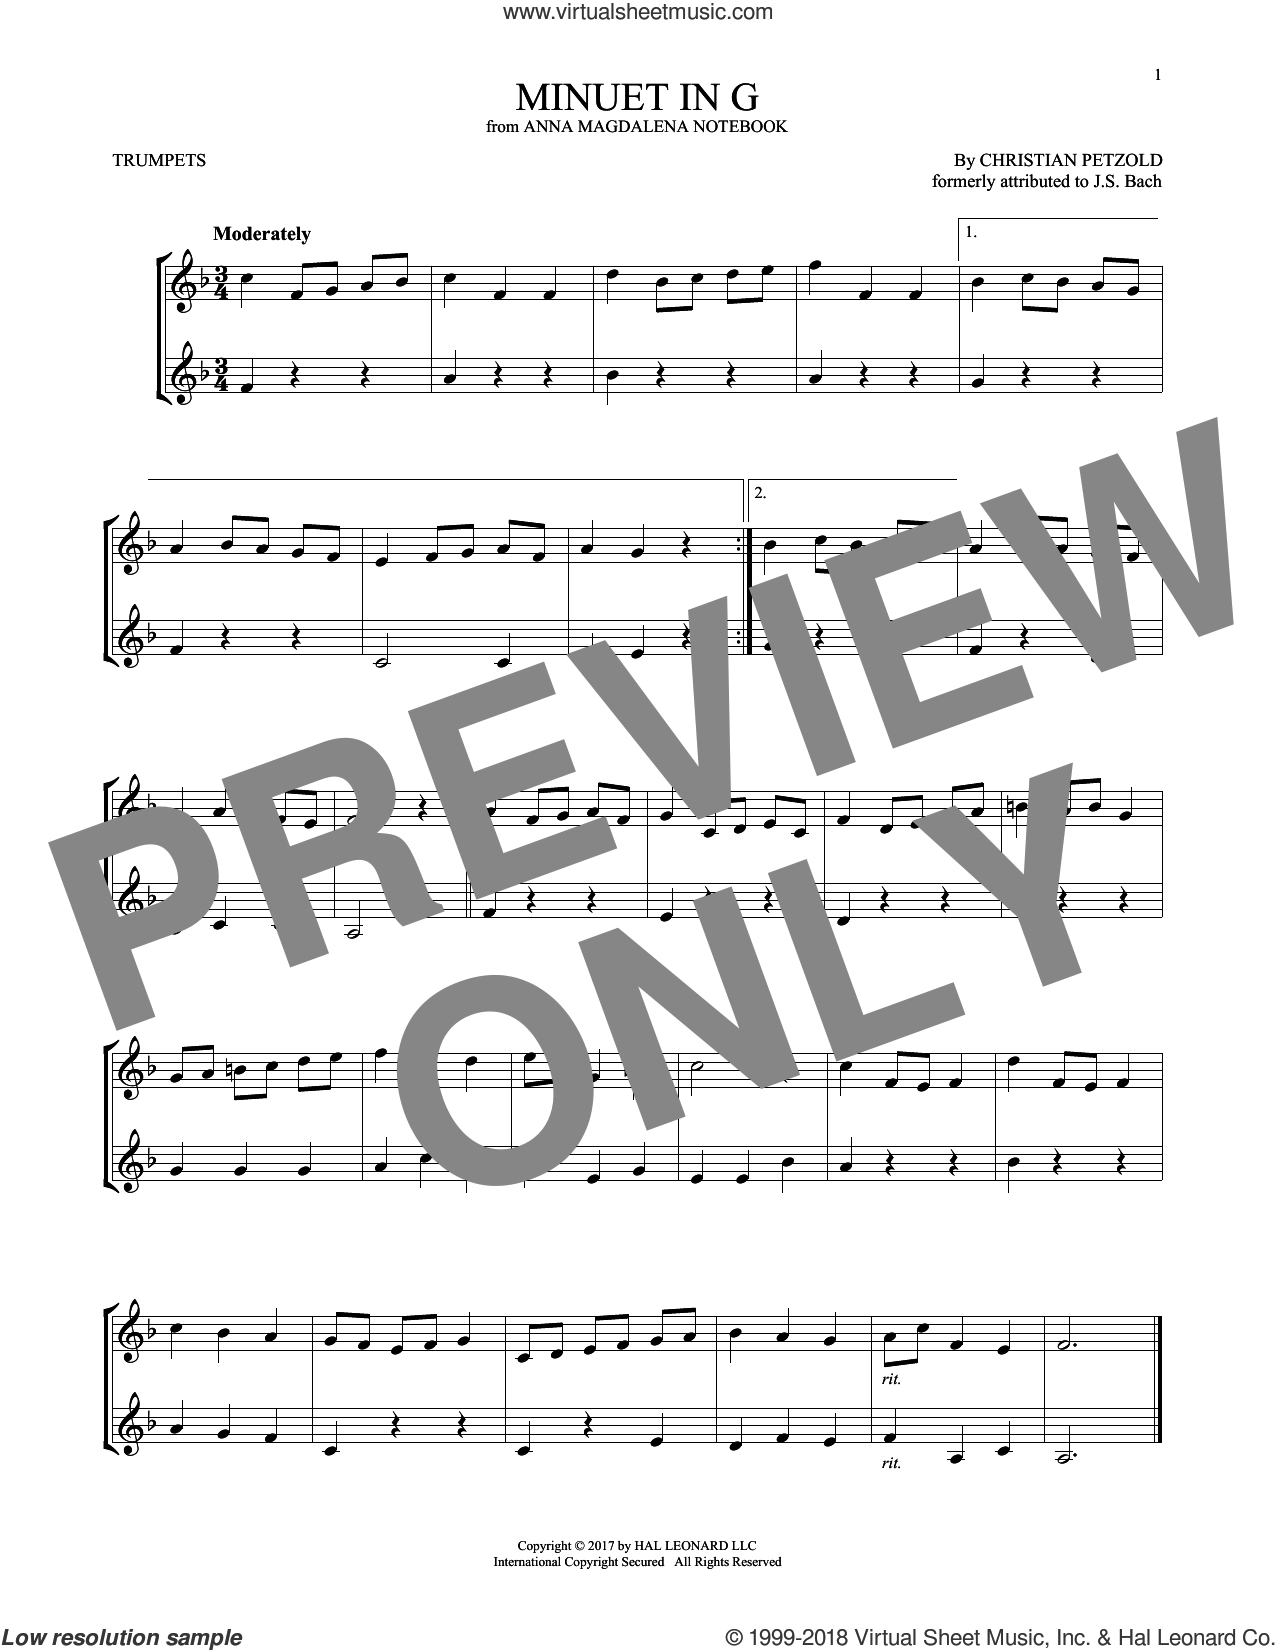 Minuet In G Major, BWV Anh. 114 sheet music for two trumpets (duet, duets) by Christian Petzold, classical score, intermediate skill level